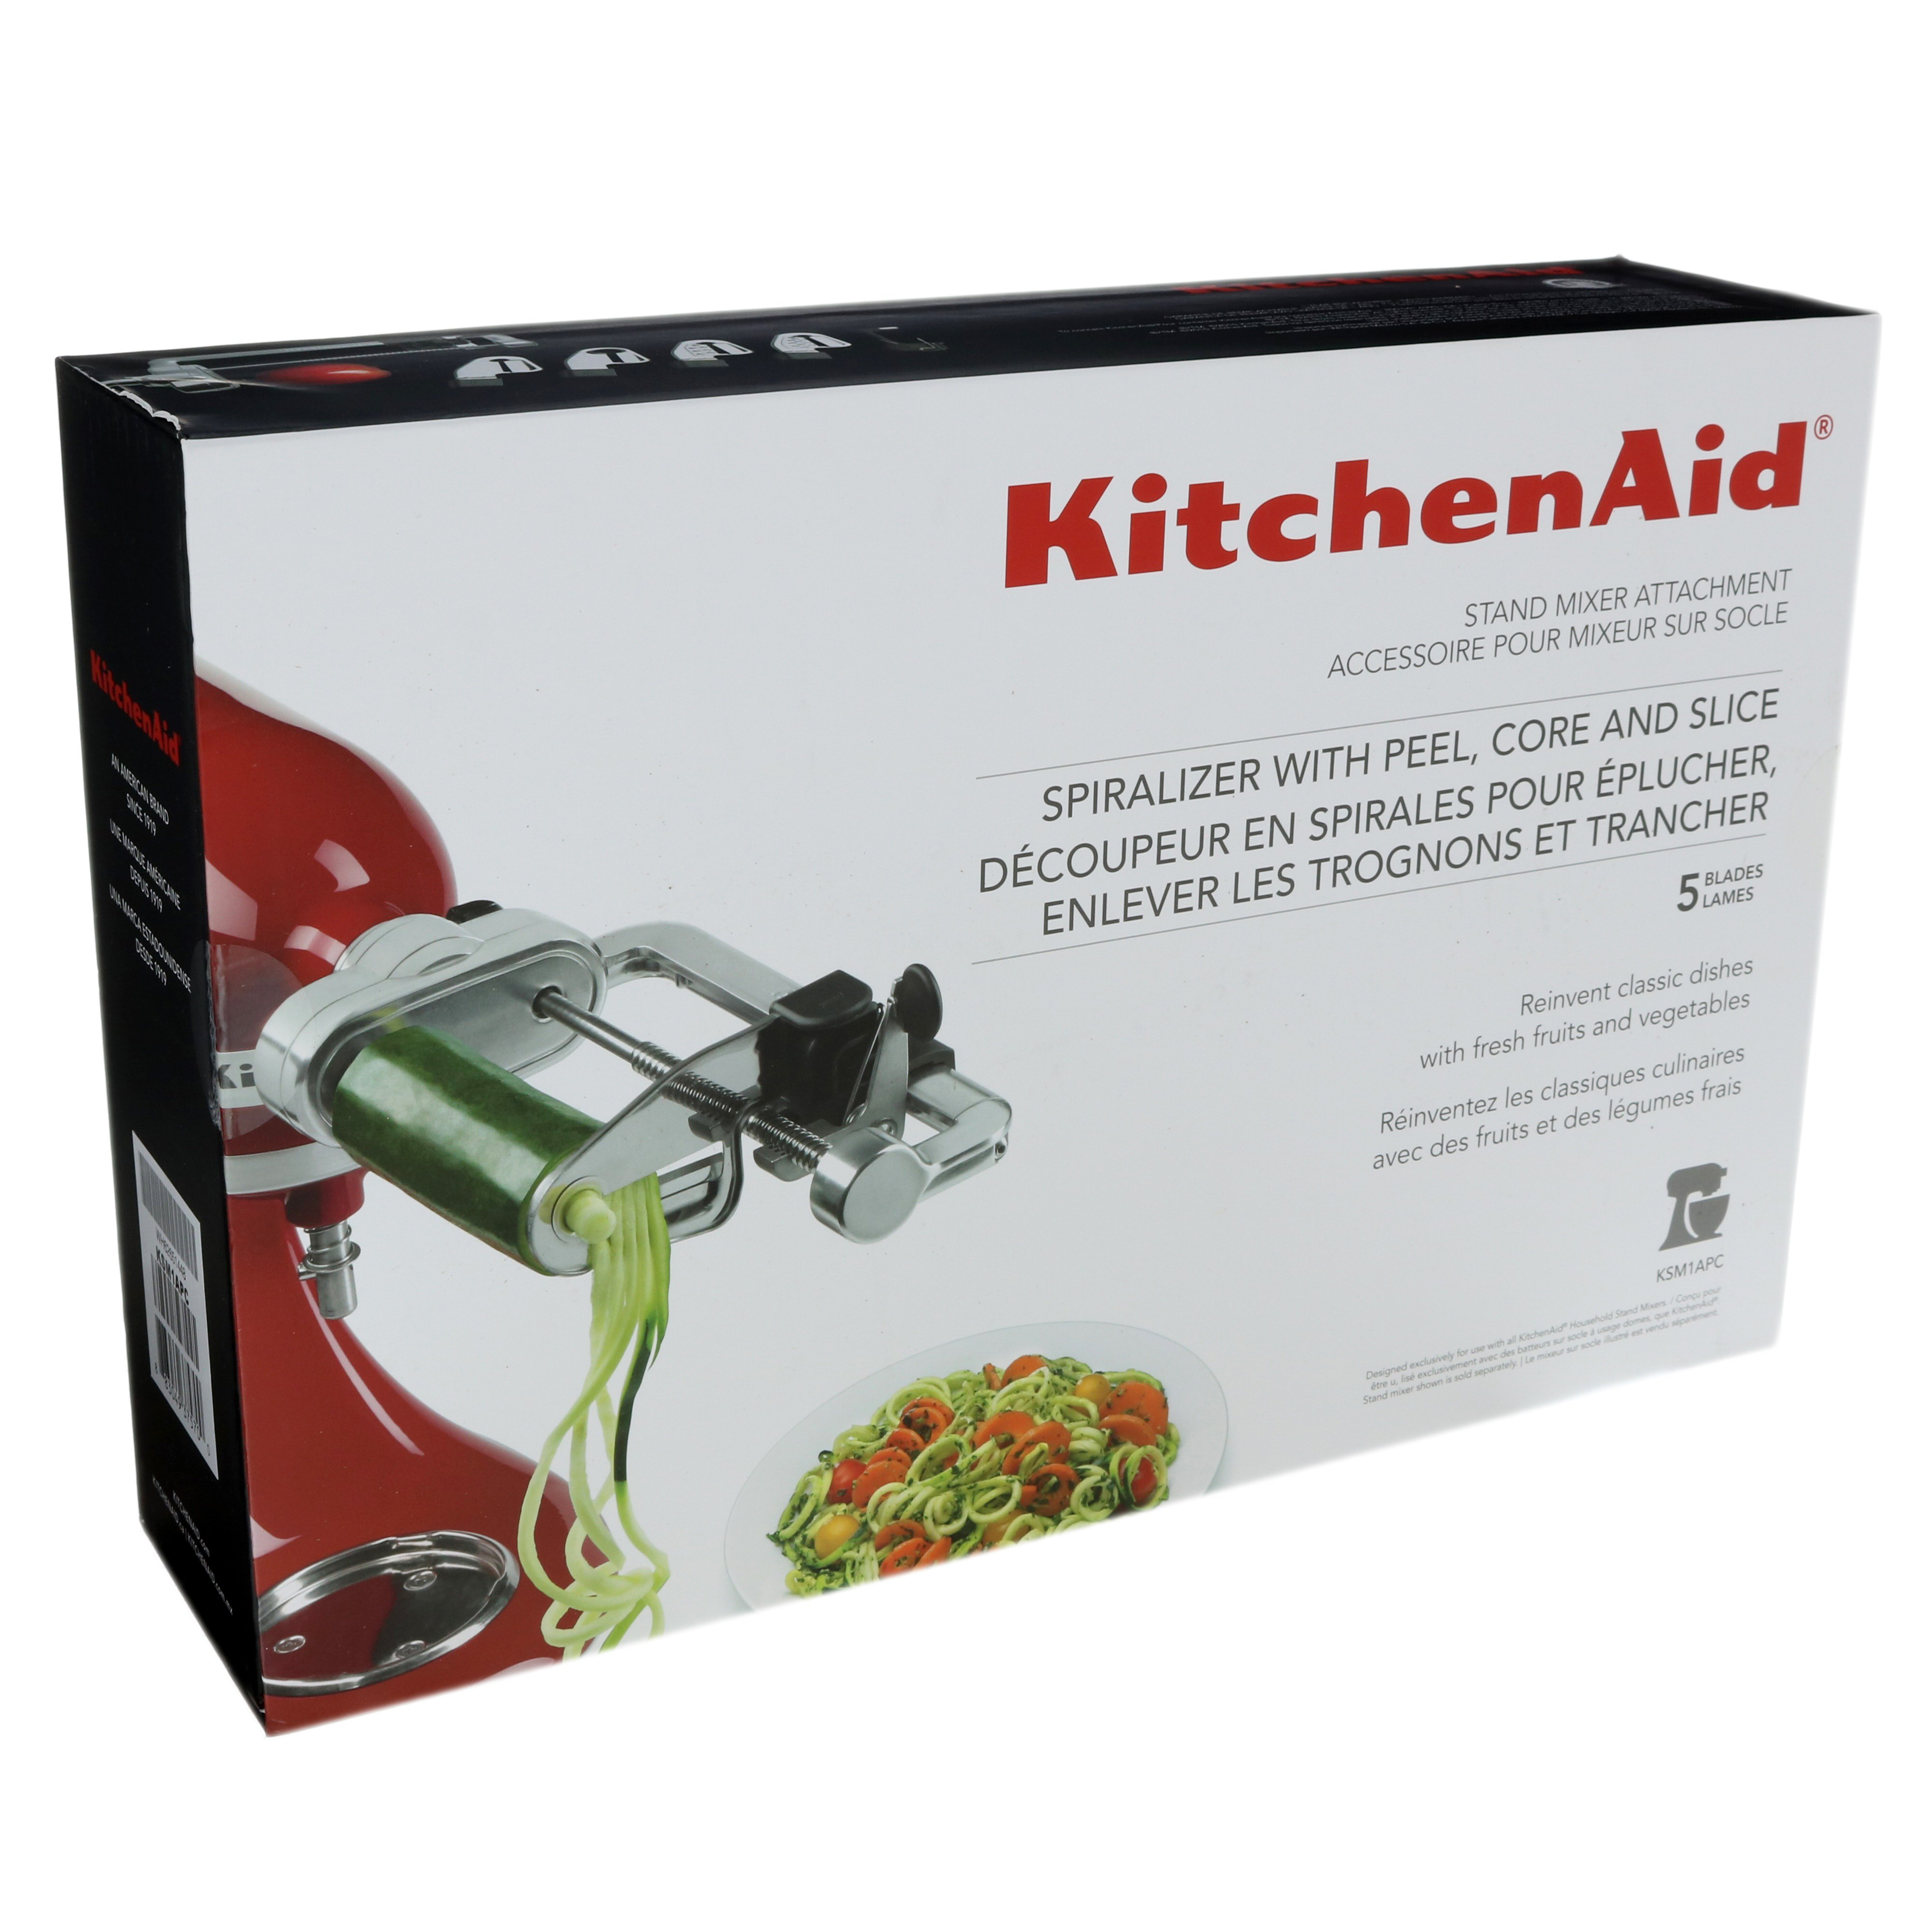 Kitchenaid Attachments Spiralizer Kitchenaid 5 Blade Spiralizer With Peel Core And Slice Stand